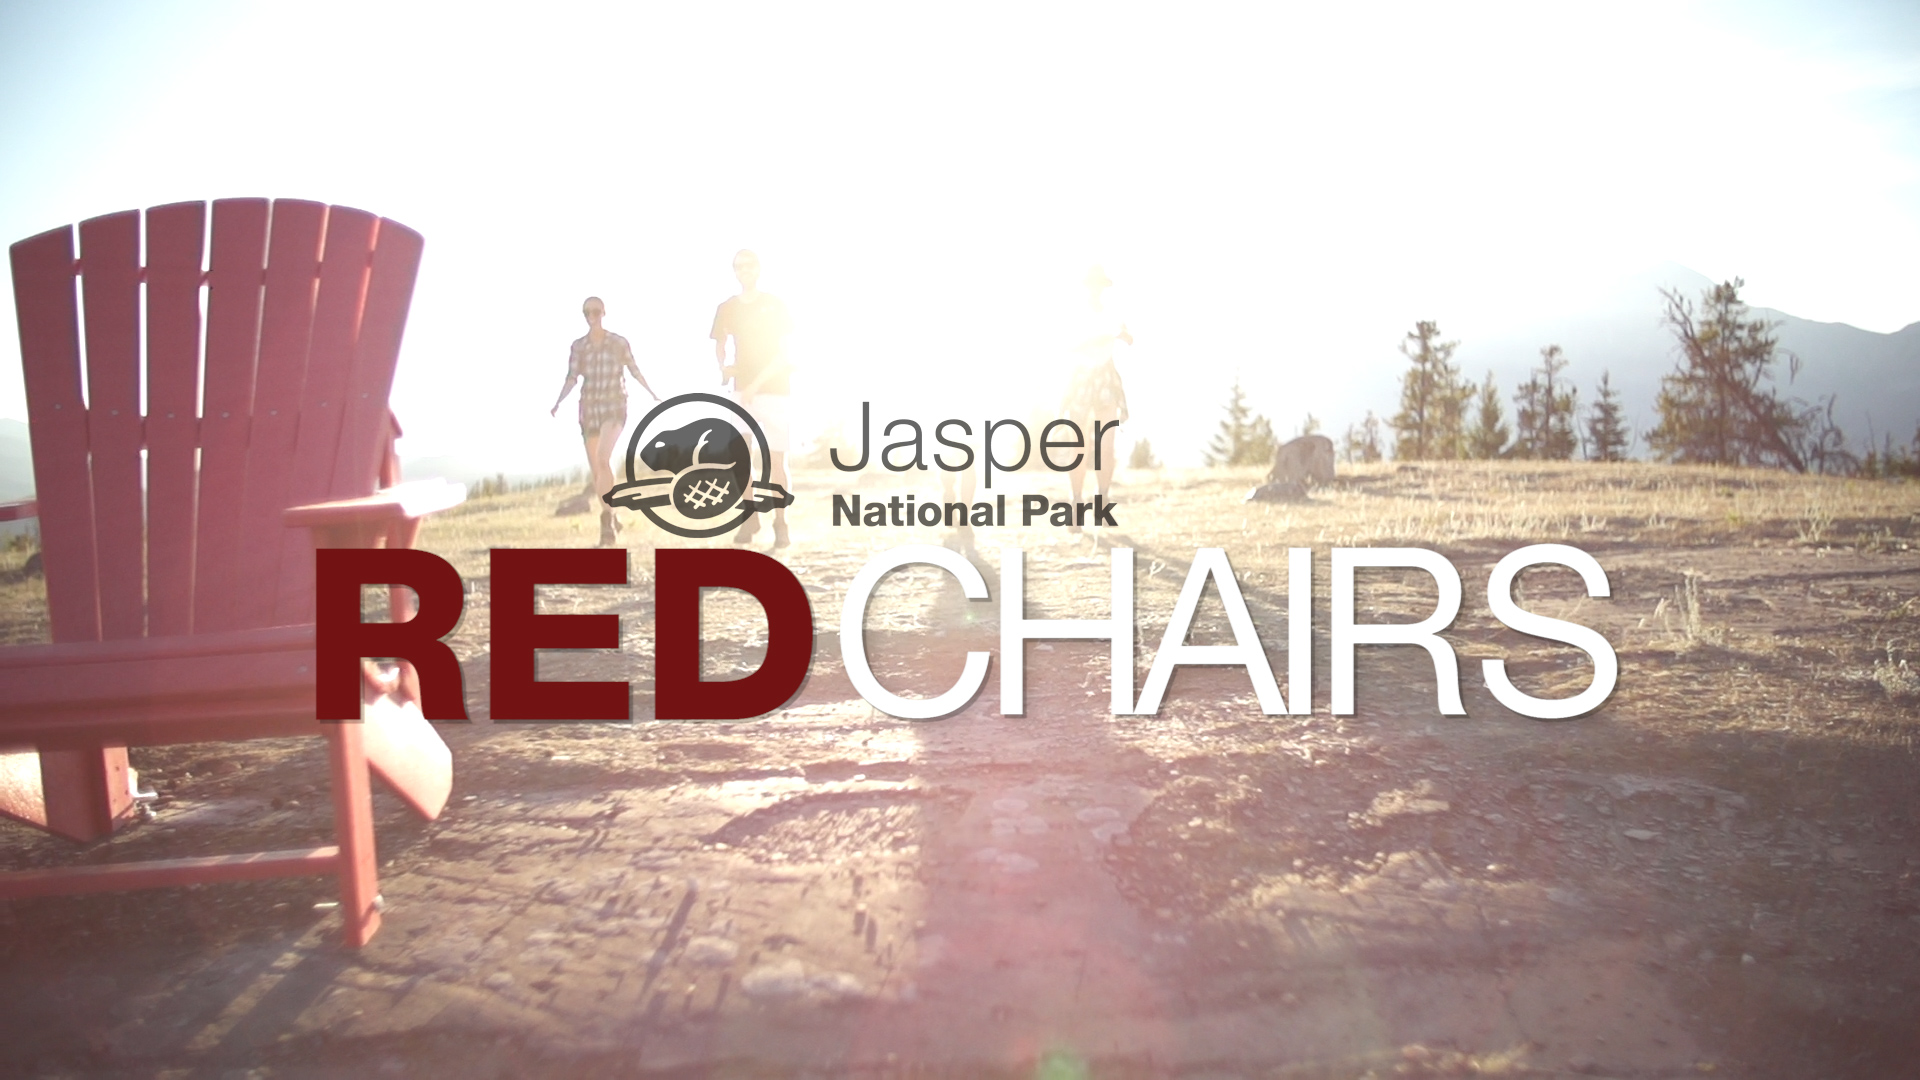 Seek them out. Find them all. Share the chairs with everyone! Jasper's new Red Chairs are out in 6 striking locations throughout the park with more to come in the years ahead. Found in areas ranging from alpine meadows to waterside havens, each offers its own special experience and a chance to develop your own sense of place within Jasper's iconic mountain scenery. Check them out, seek them all out and share your images with us! For information to help you find your way, begin by exploring the website: www.pc.gc.ca/jasperredchair